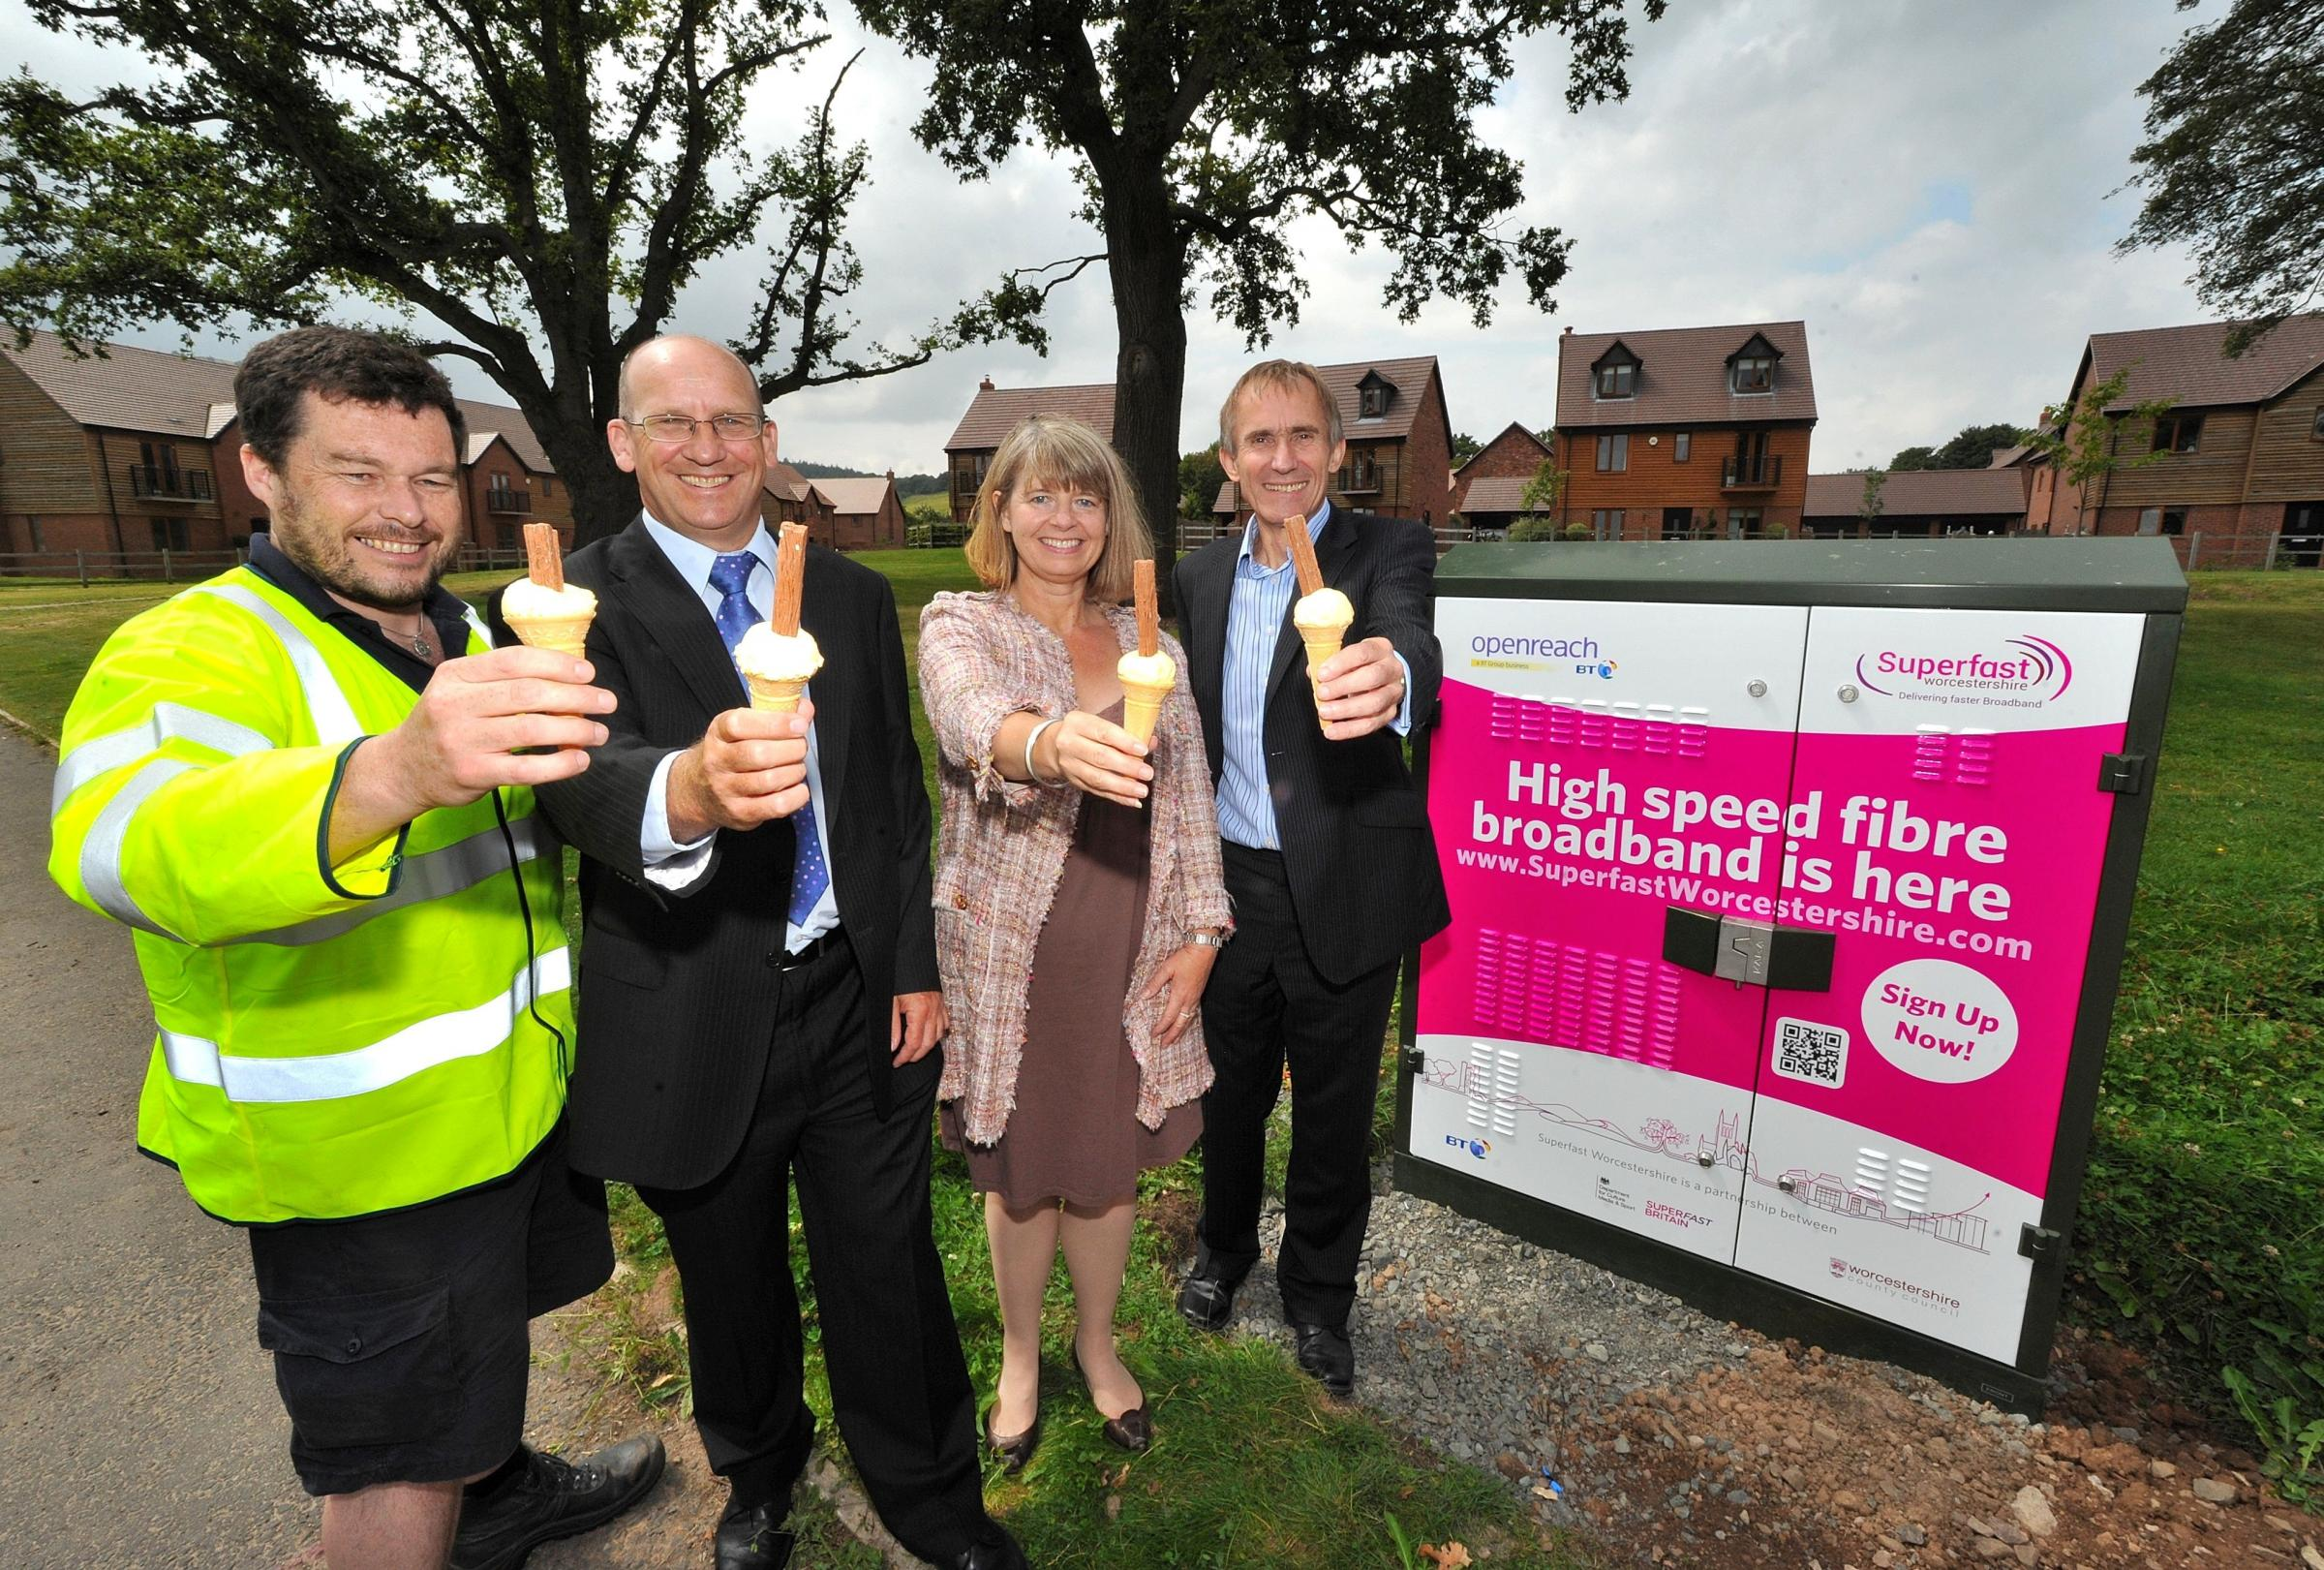 Broadband boost for hundreds at housing estate